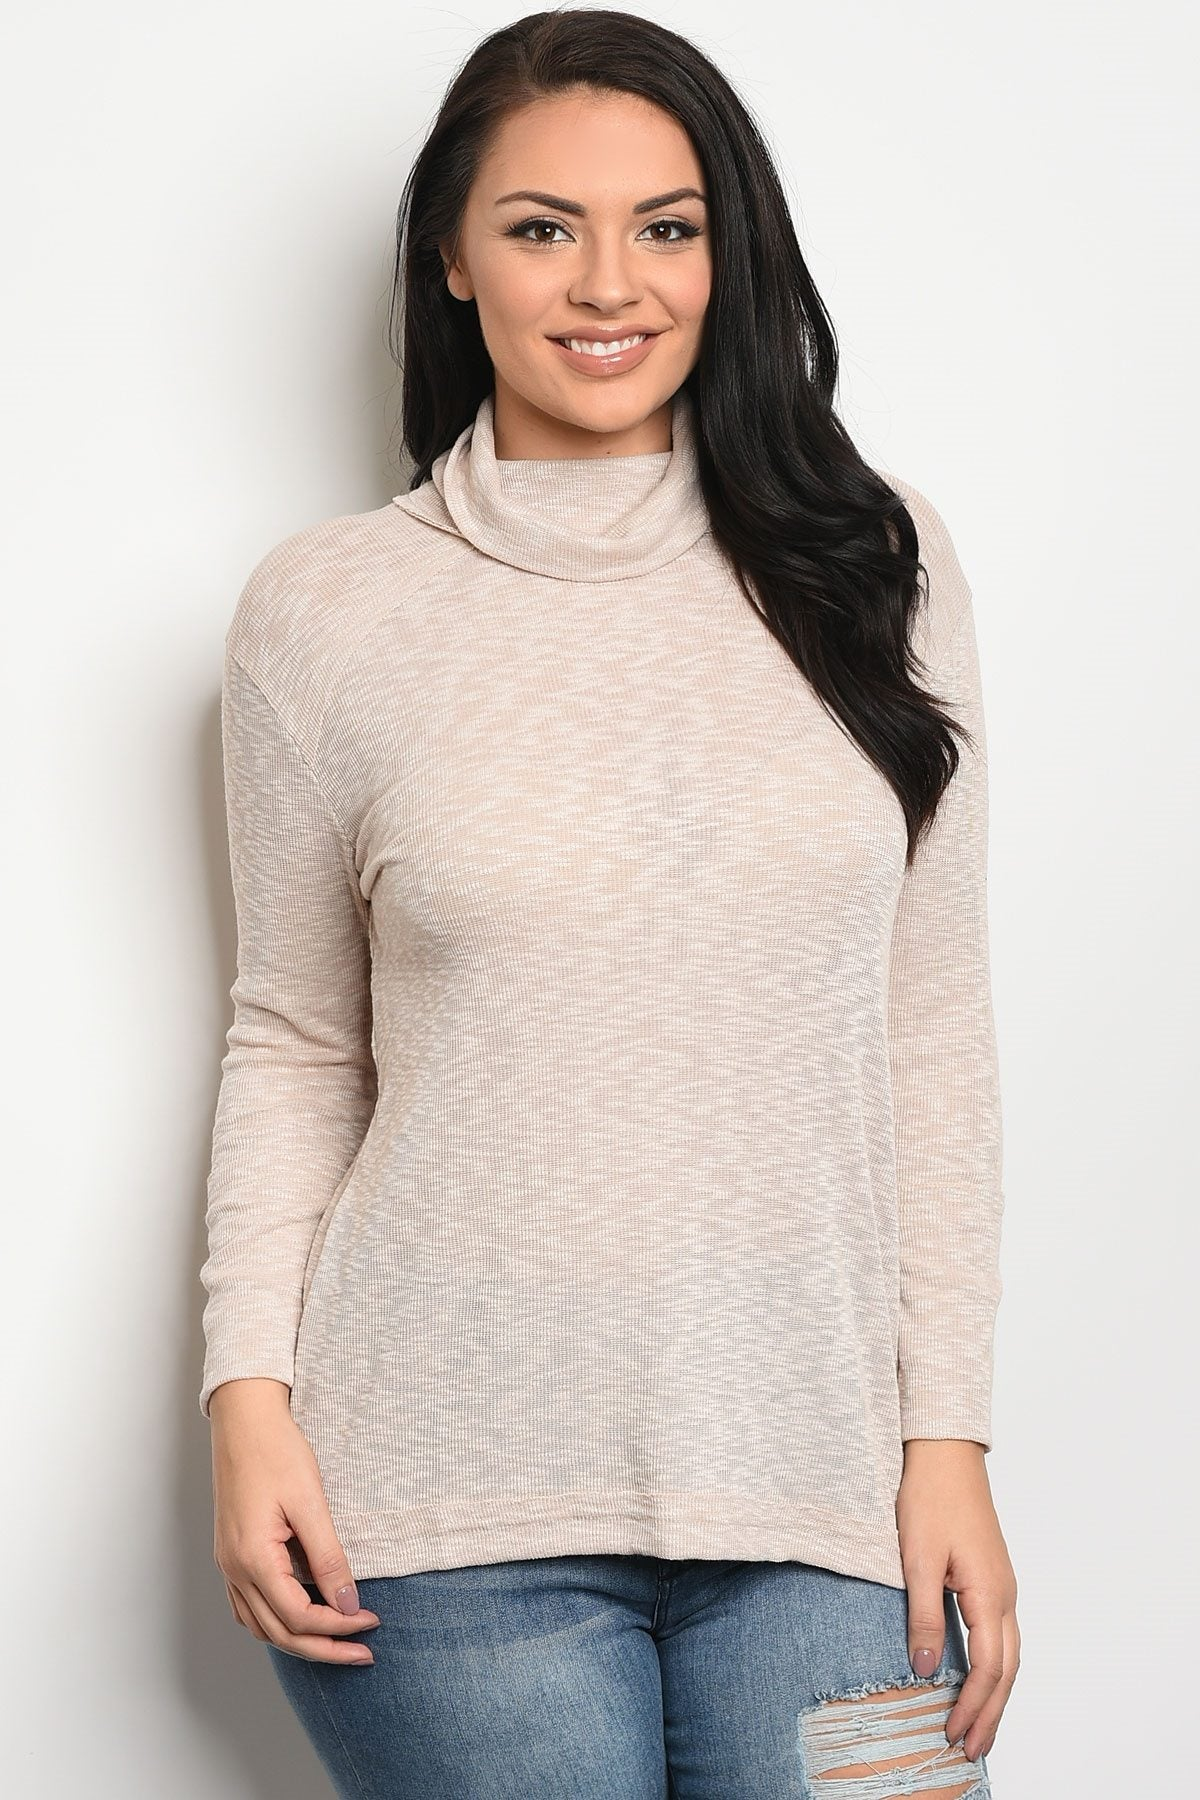 Ladies fashion plus size long sleeve knit top that features a turtle neck